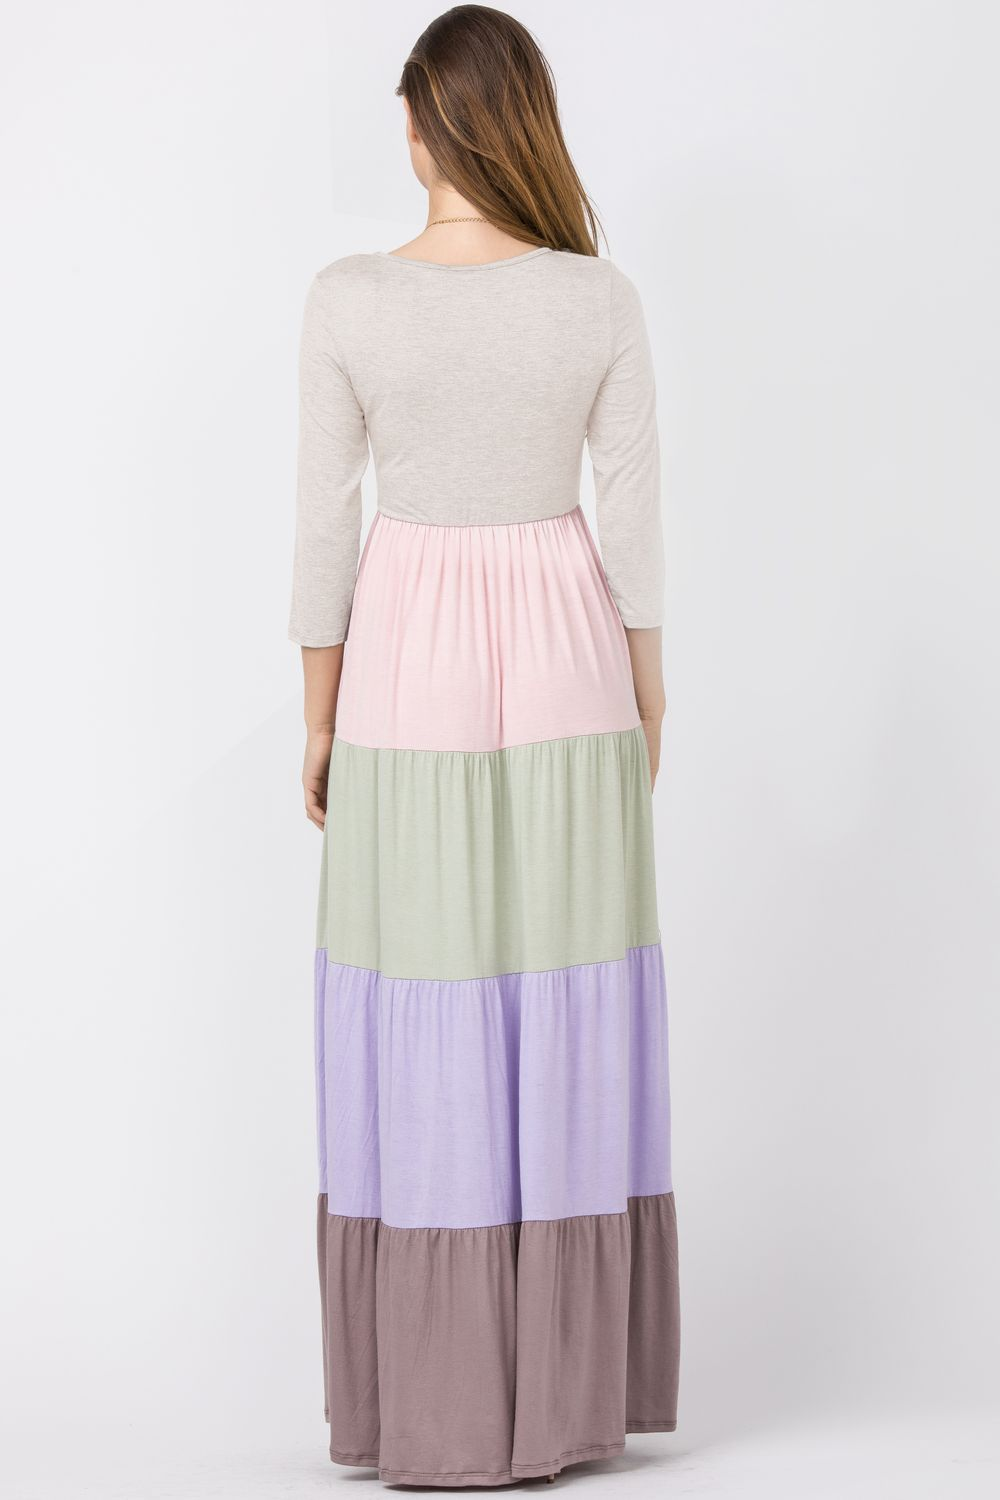 Oatmeal Color-Block Tiered Maxi Dress